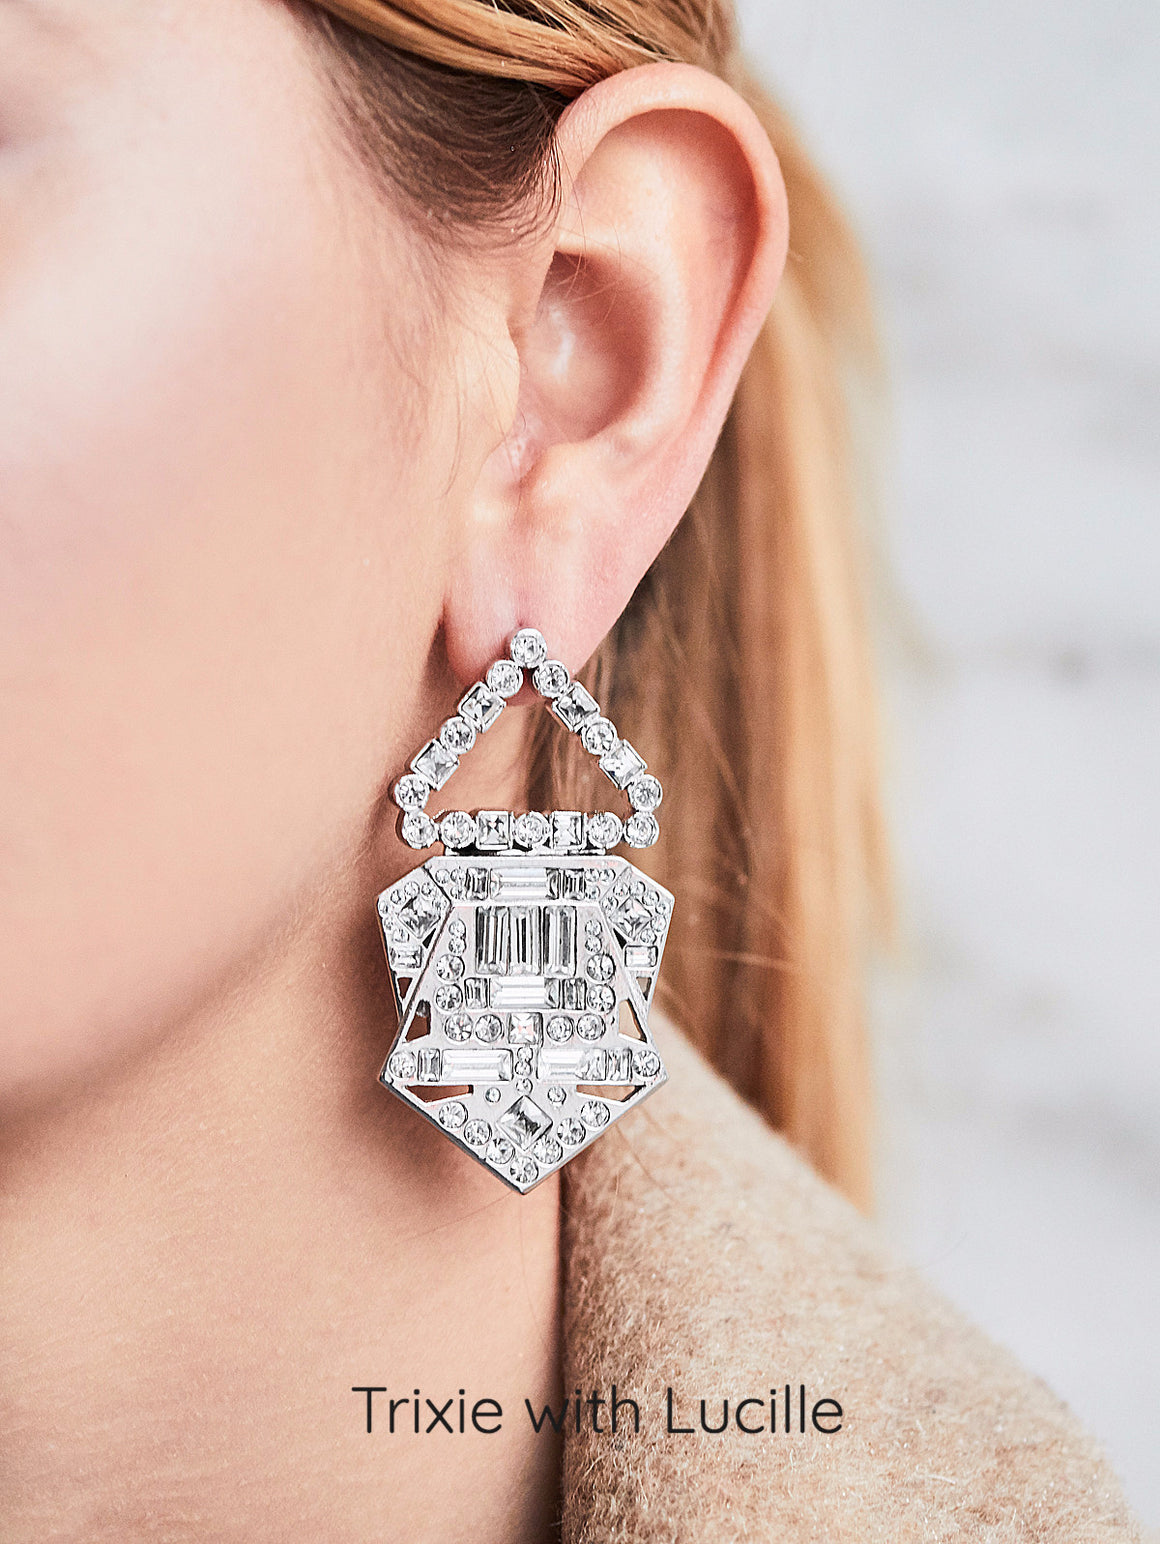 Jubilee Jones Trixie Earrings with Lucille Clips